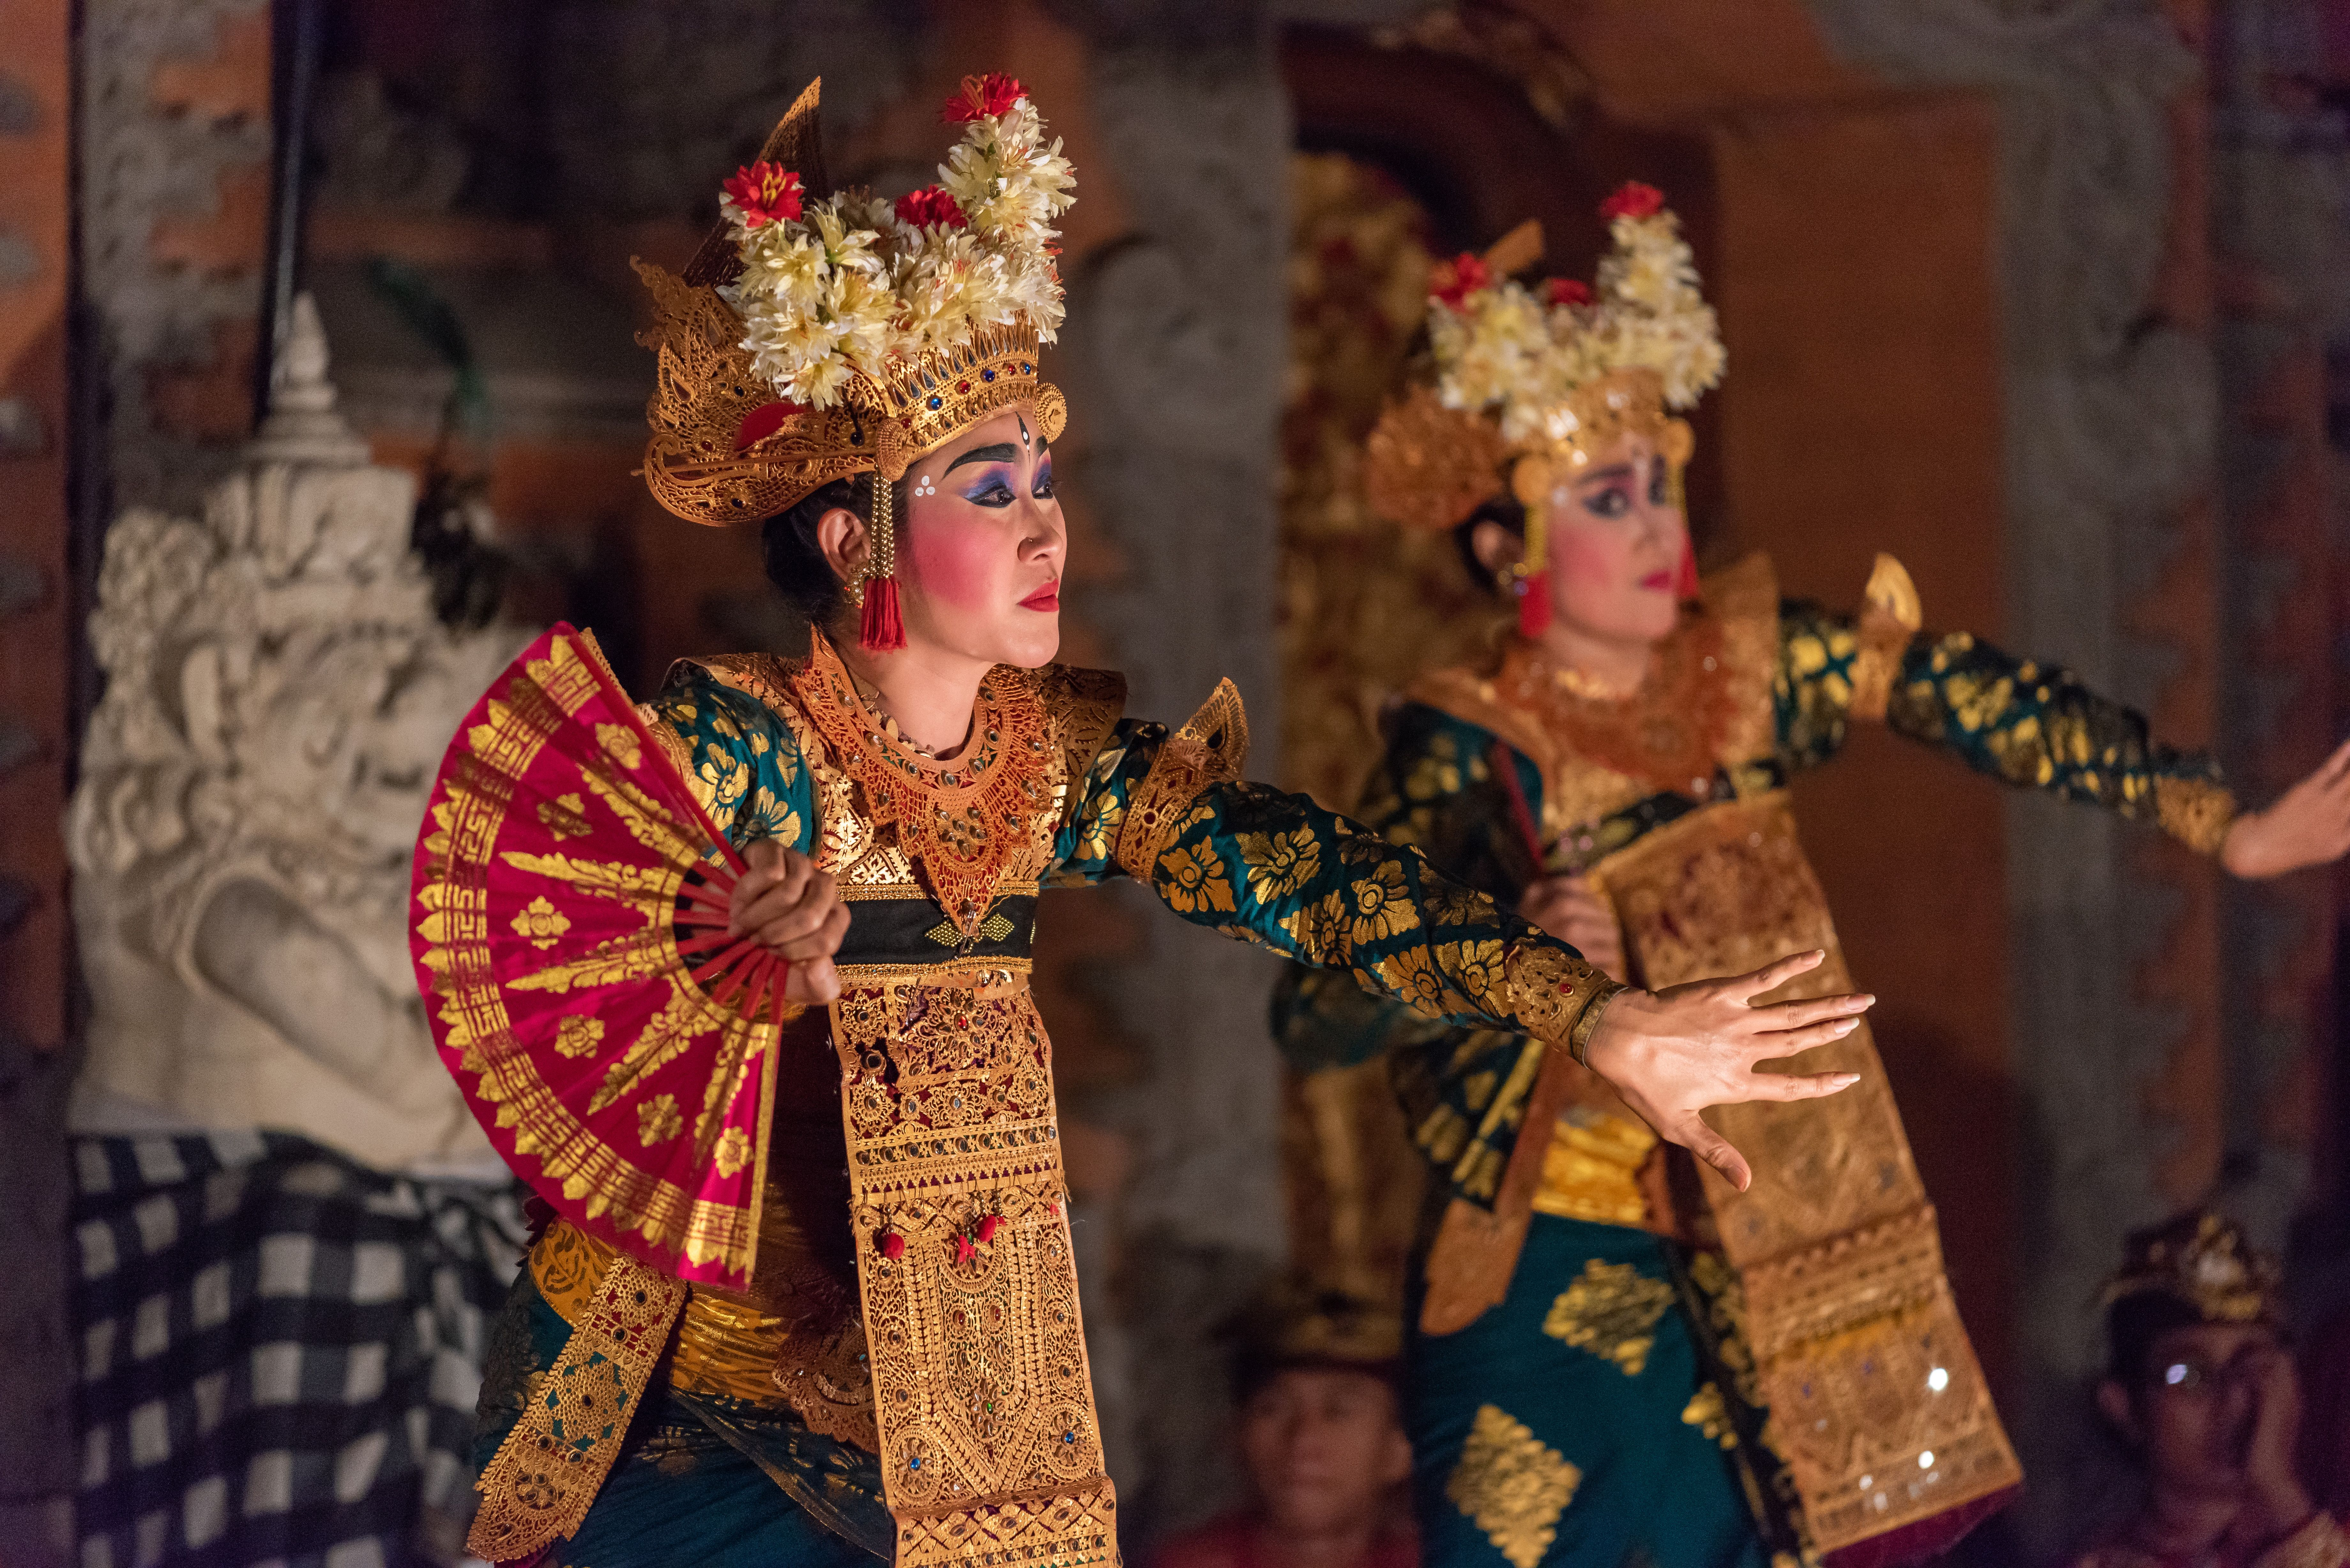 Balinese Dance Is An Ancient Dance Tradition That Is Part Of